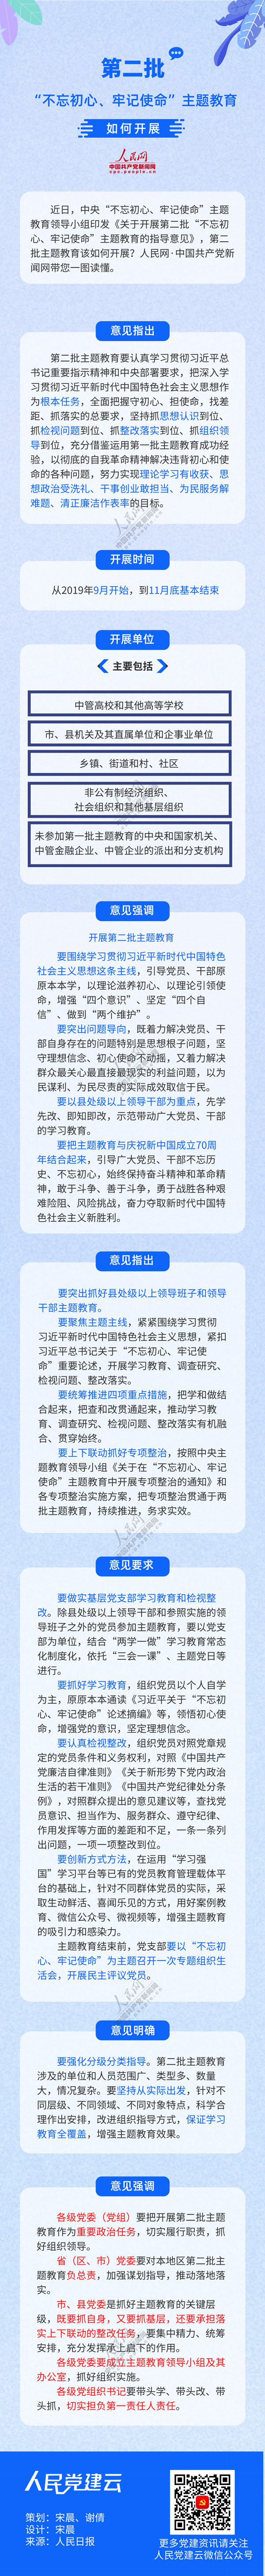 http://chuxin.people.cn/NMediaFile/2019/0906/MAIN201909061113000107283434782.jpg